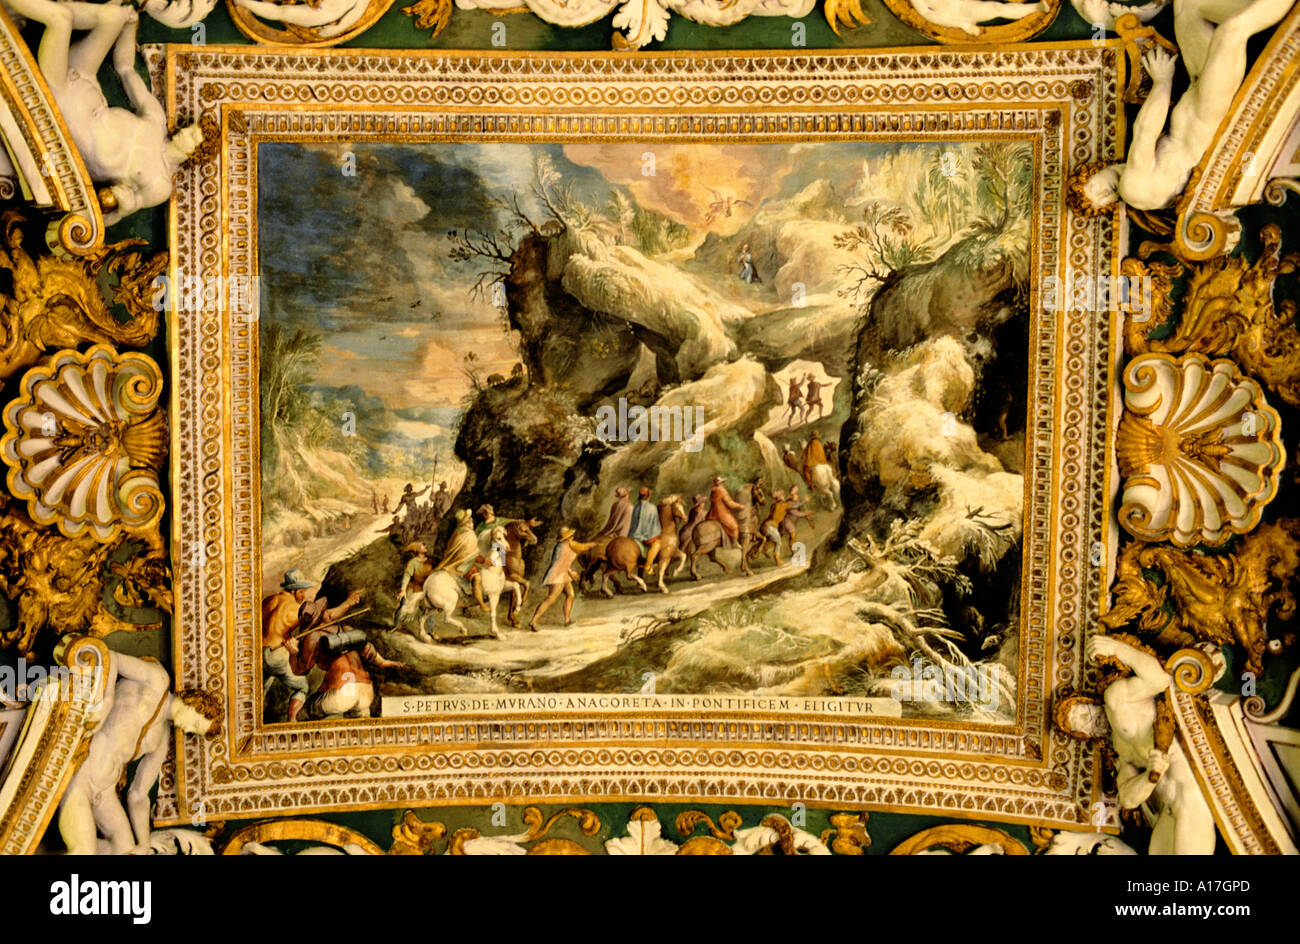 Excellent Roman Wall Art Images - The Wall Art Decorations ...